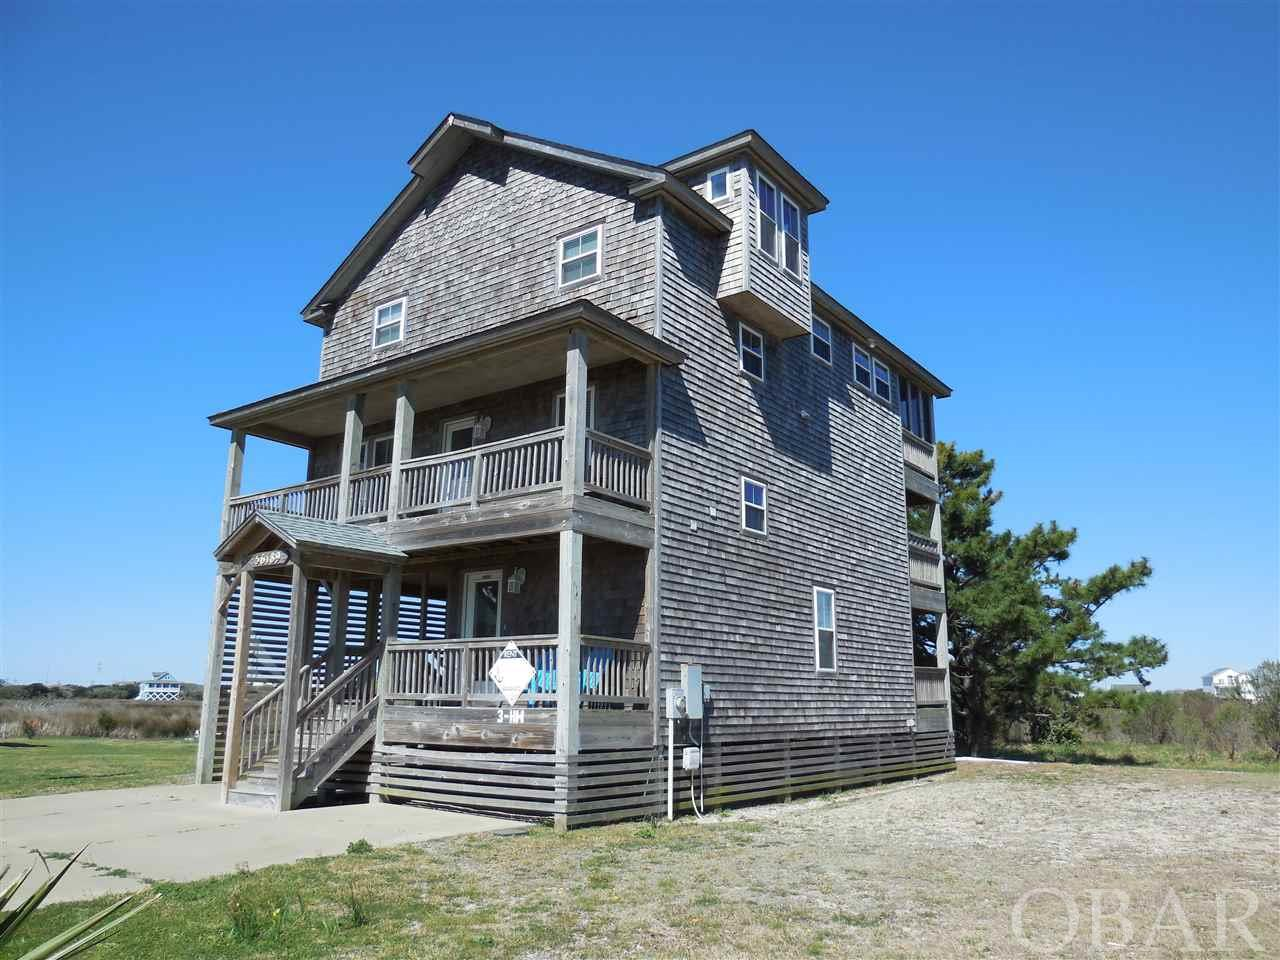 Hatteras Island Real Estate And Homes For Sale